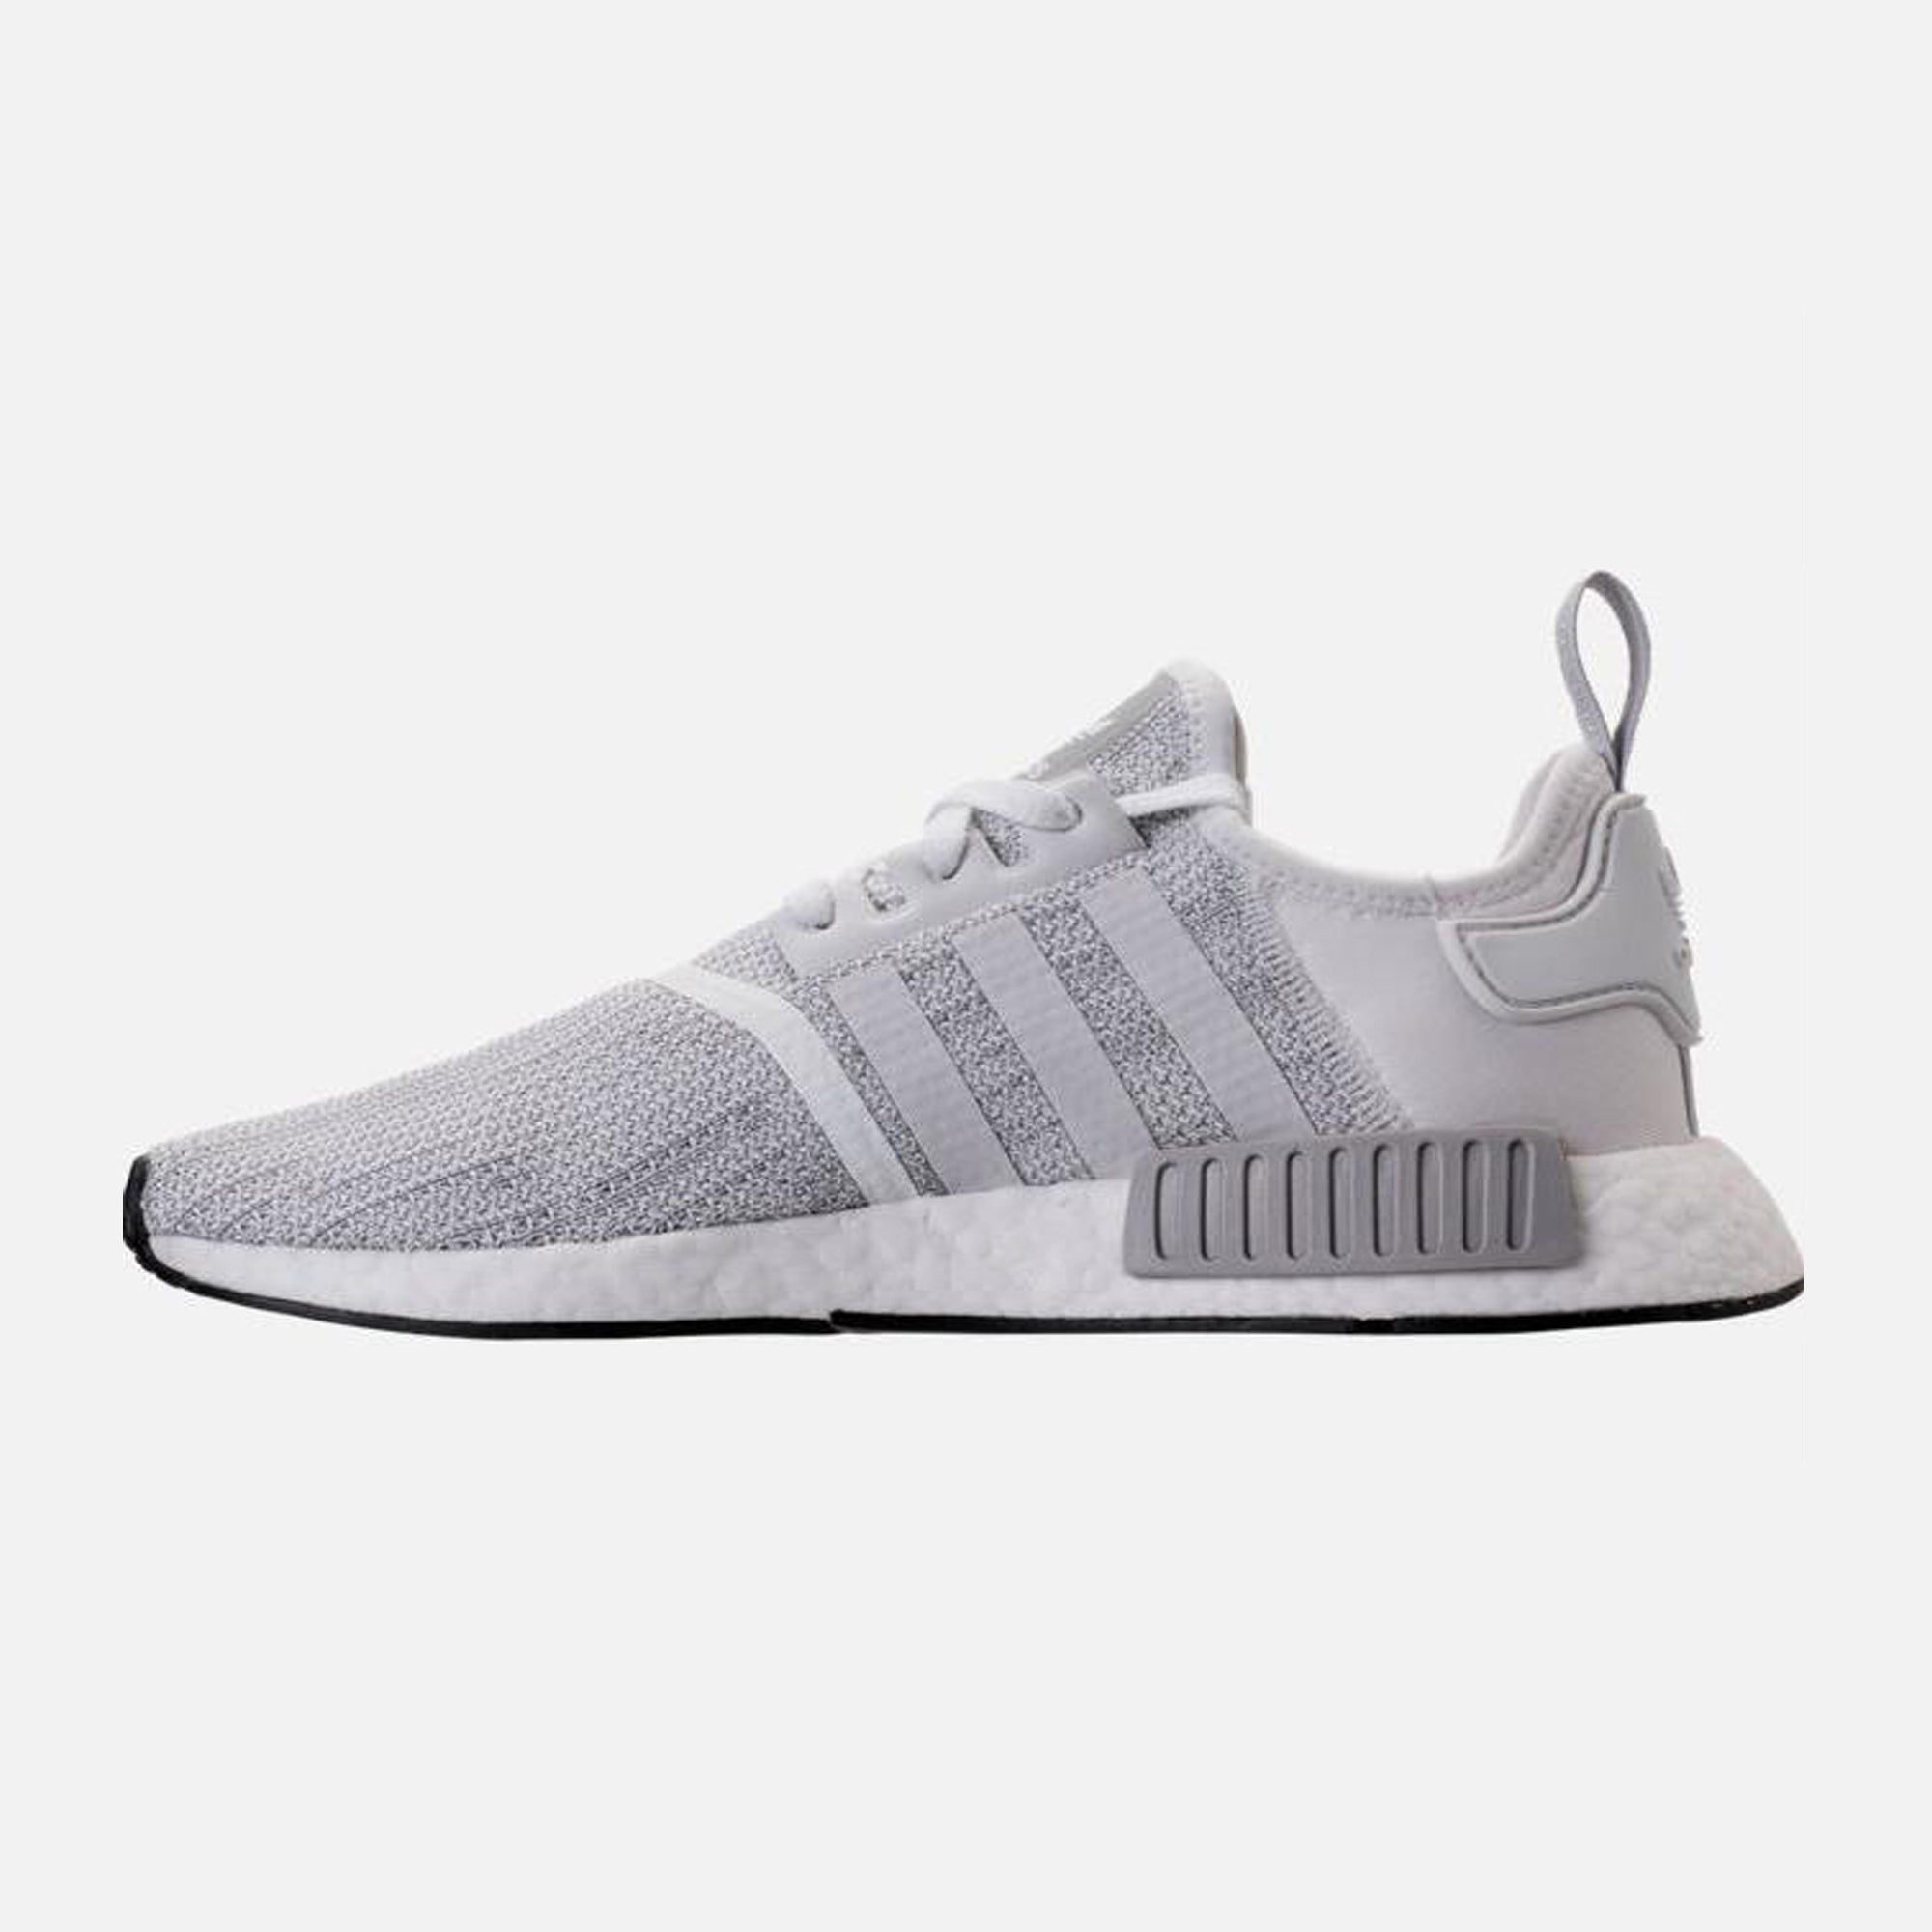 5354c051688de MEN S Adidas NMD Runner Casual Shoes White Trace Grey – PZOZO